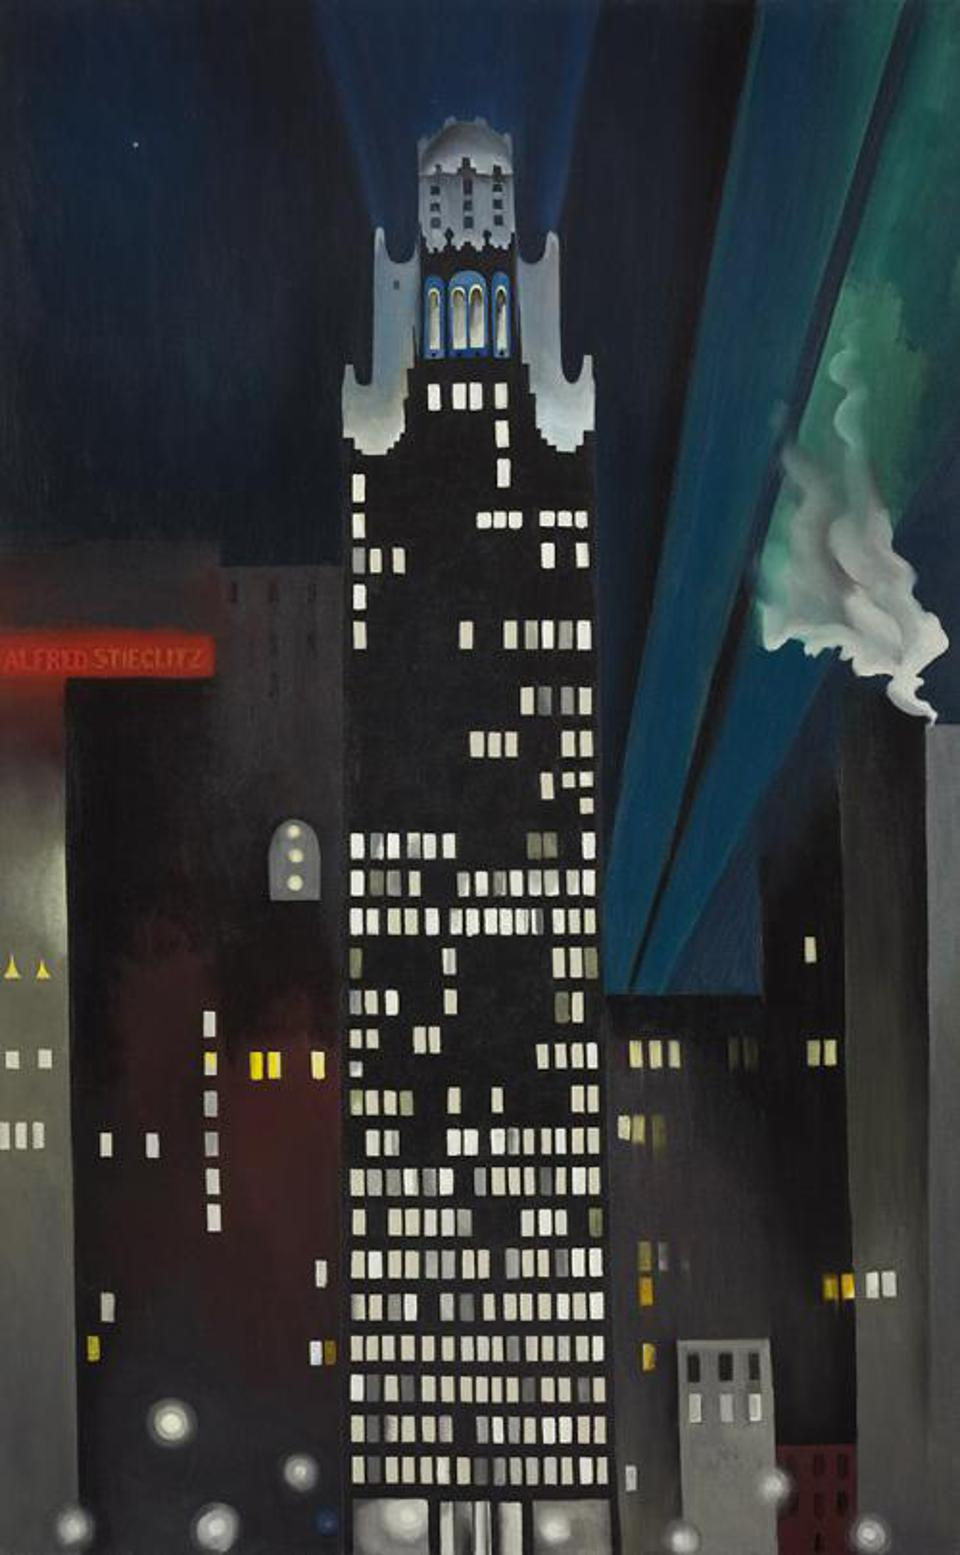 'Radiator Building—Night, New York,' by Georgia O'Keeffe (1887 - 1986). DATE 1927. Oil on canvas, 48 × 30 in. (121.9 × 76.2 cm).